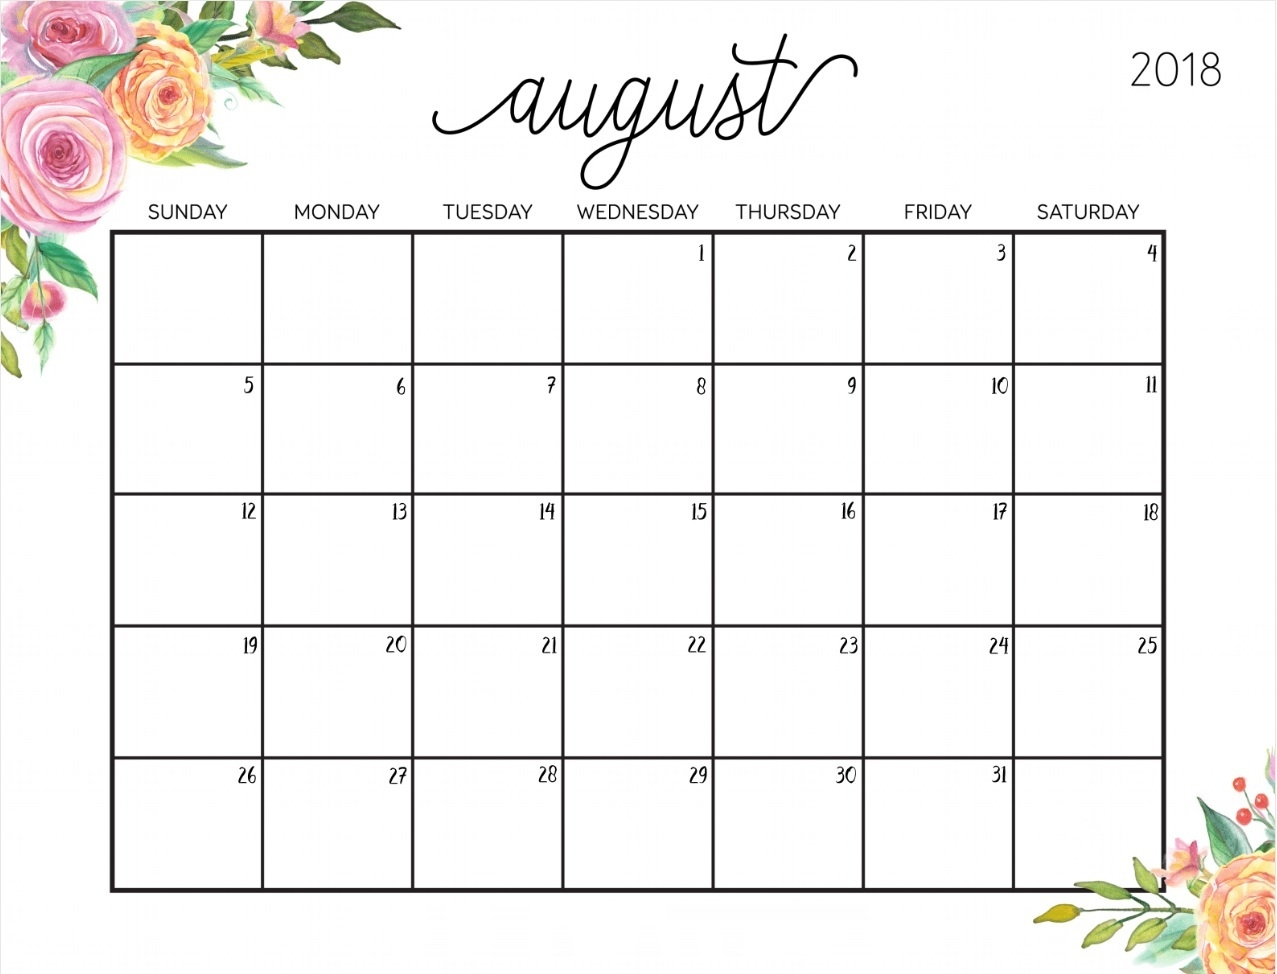 cute calendar august 2018 printable calendar 2018 template excel Calendar August 2018 Printable Template erdferdf